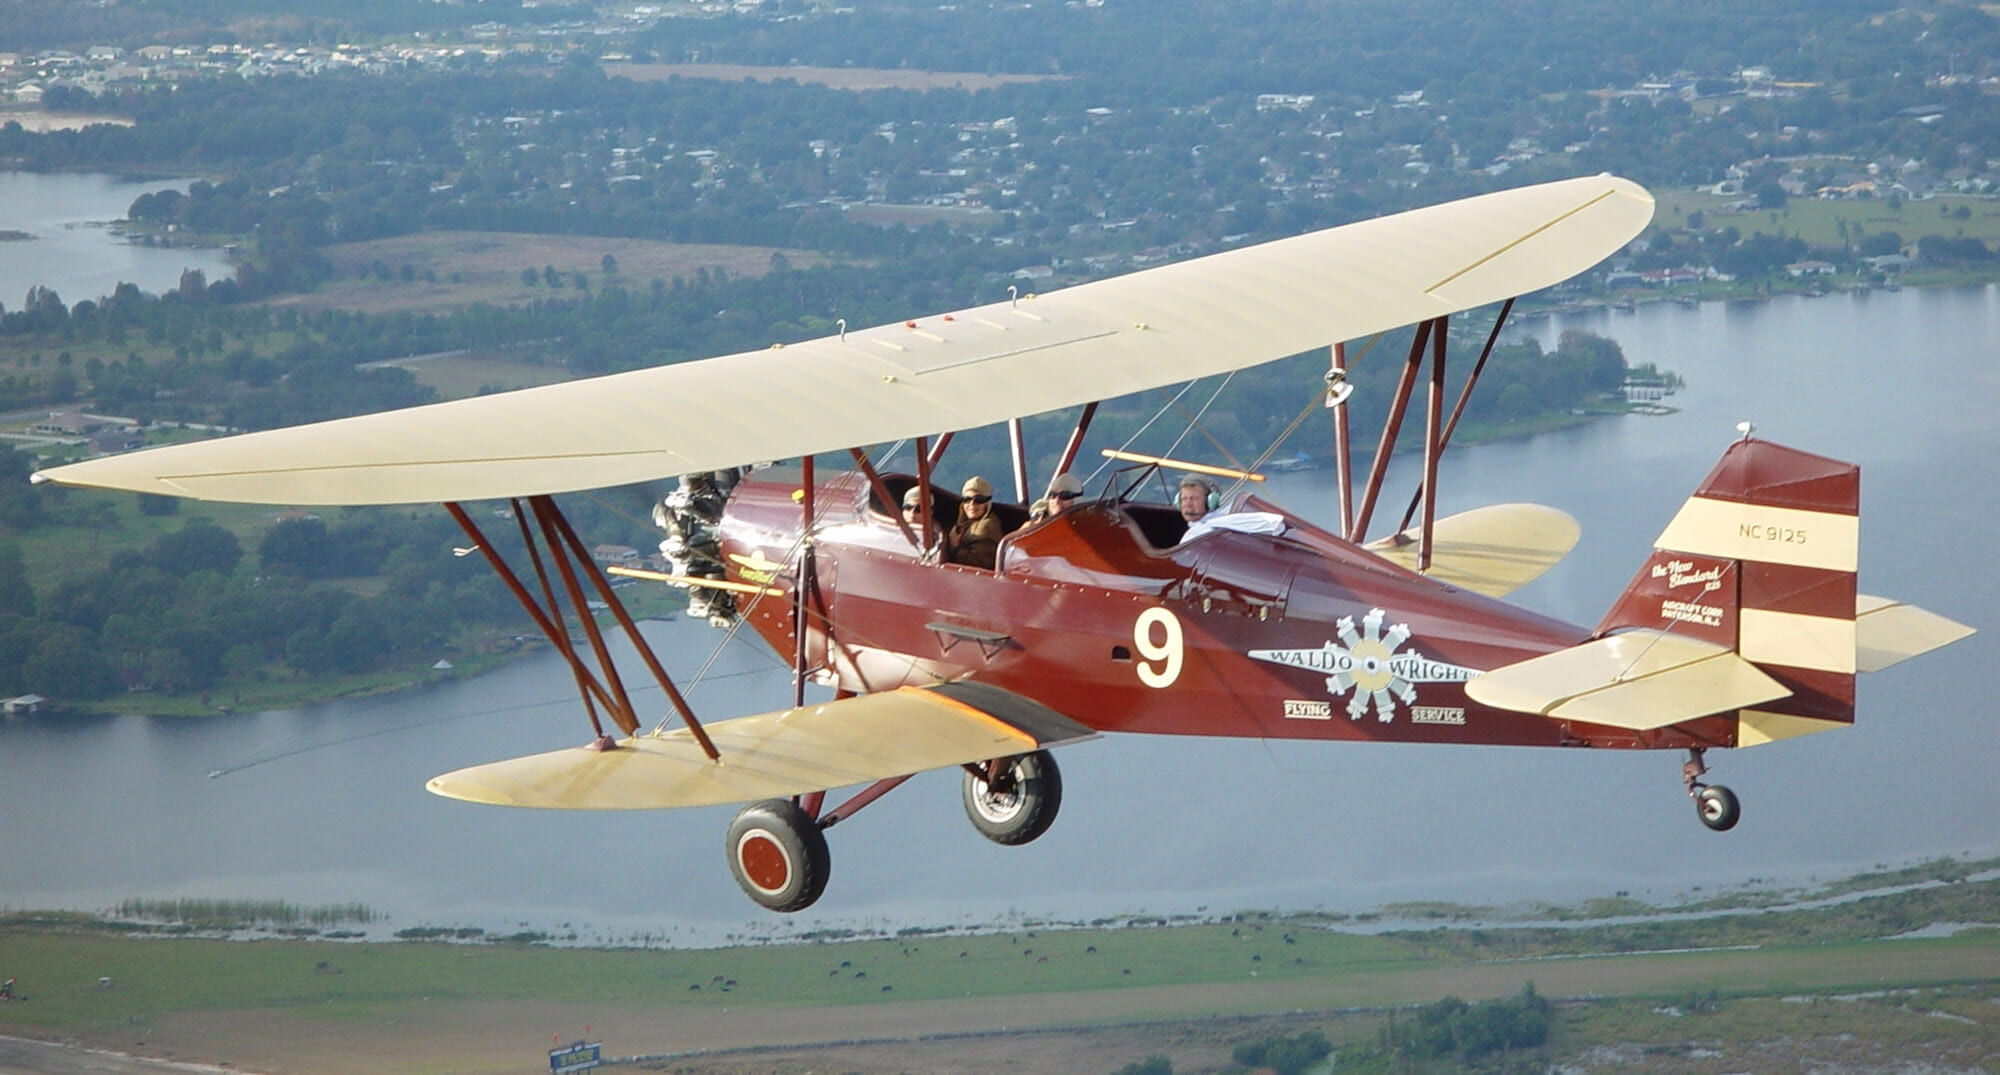 Standard D-25 in flight during biplane ride at Waldo Wright's Flying Service in Central Florida